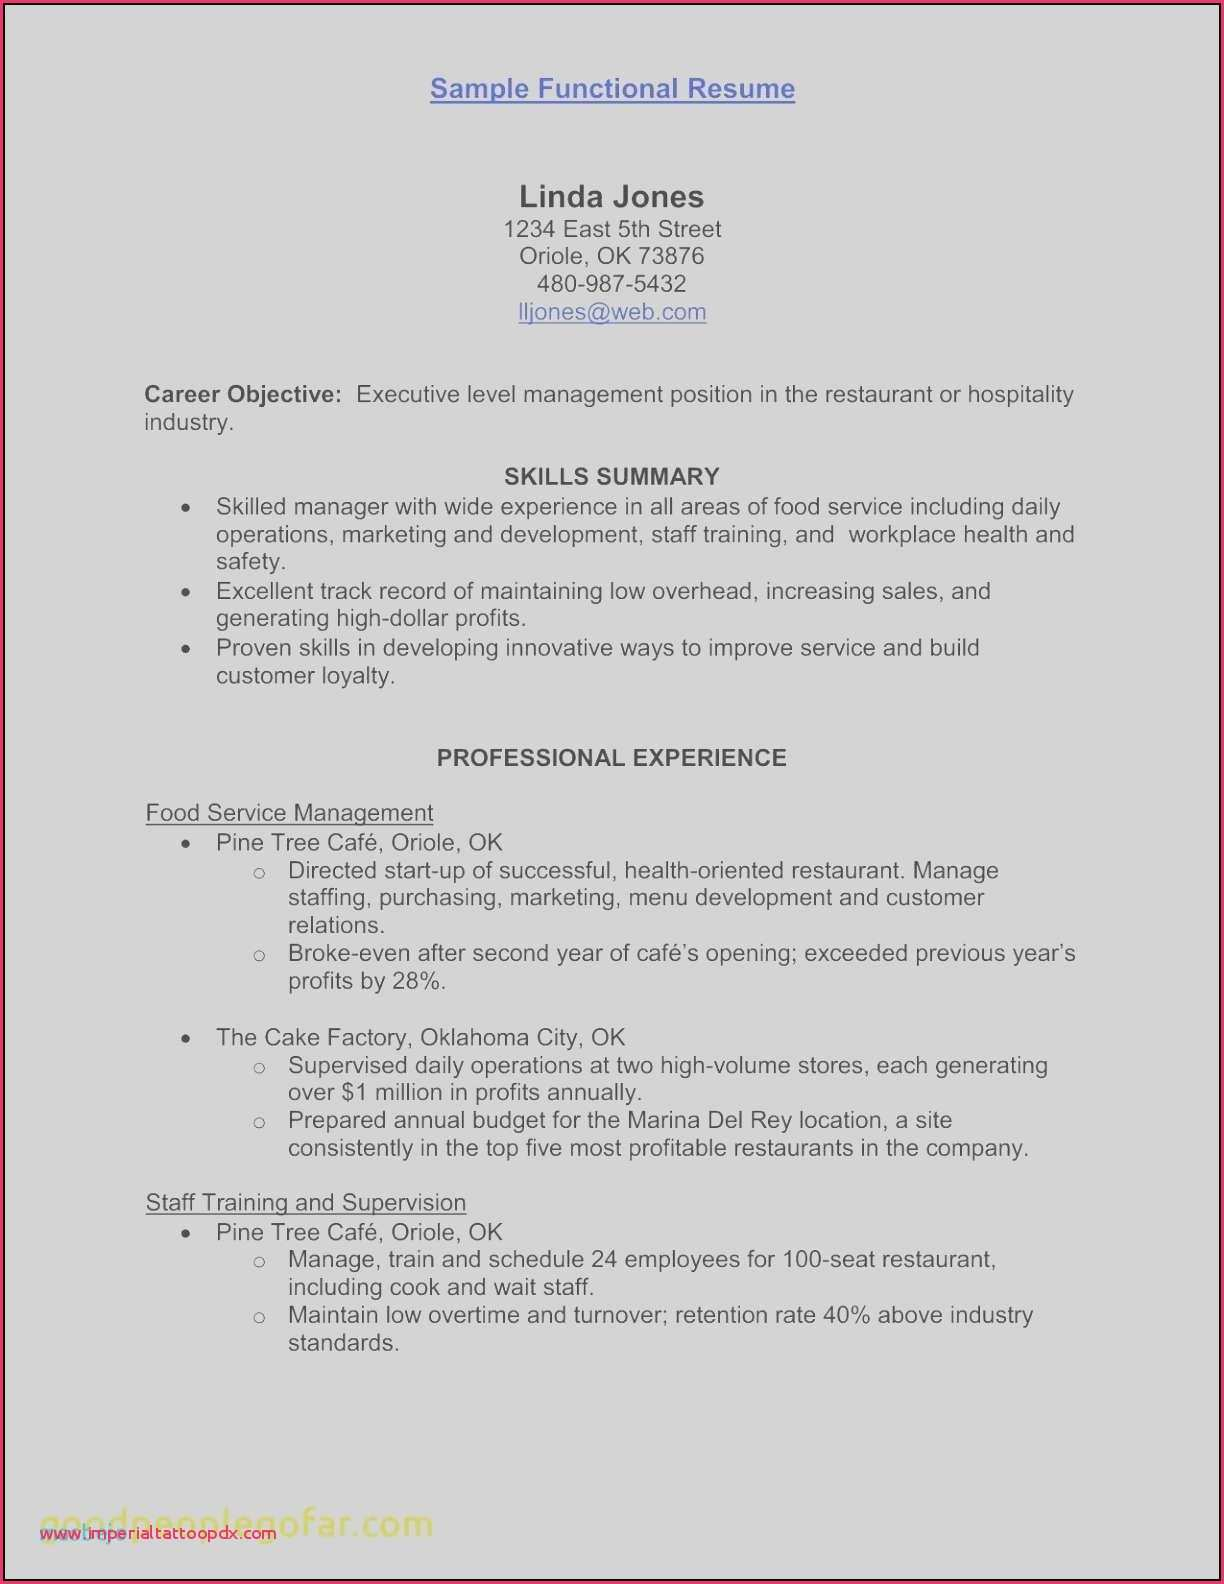 Service Industry Resume Examples - 51 Patient Care Tech Resume